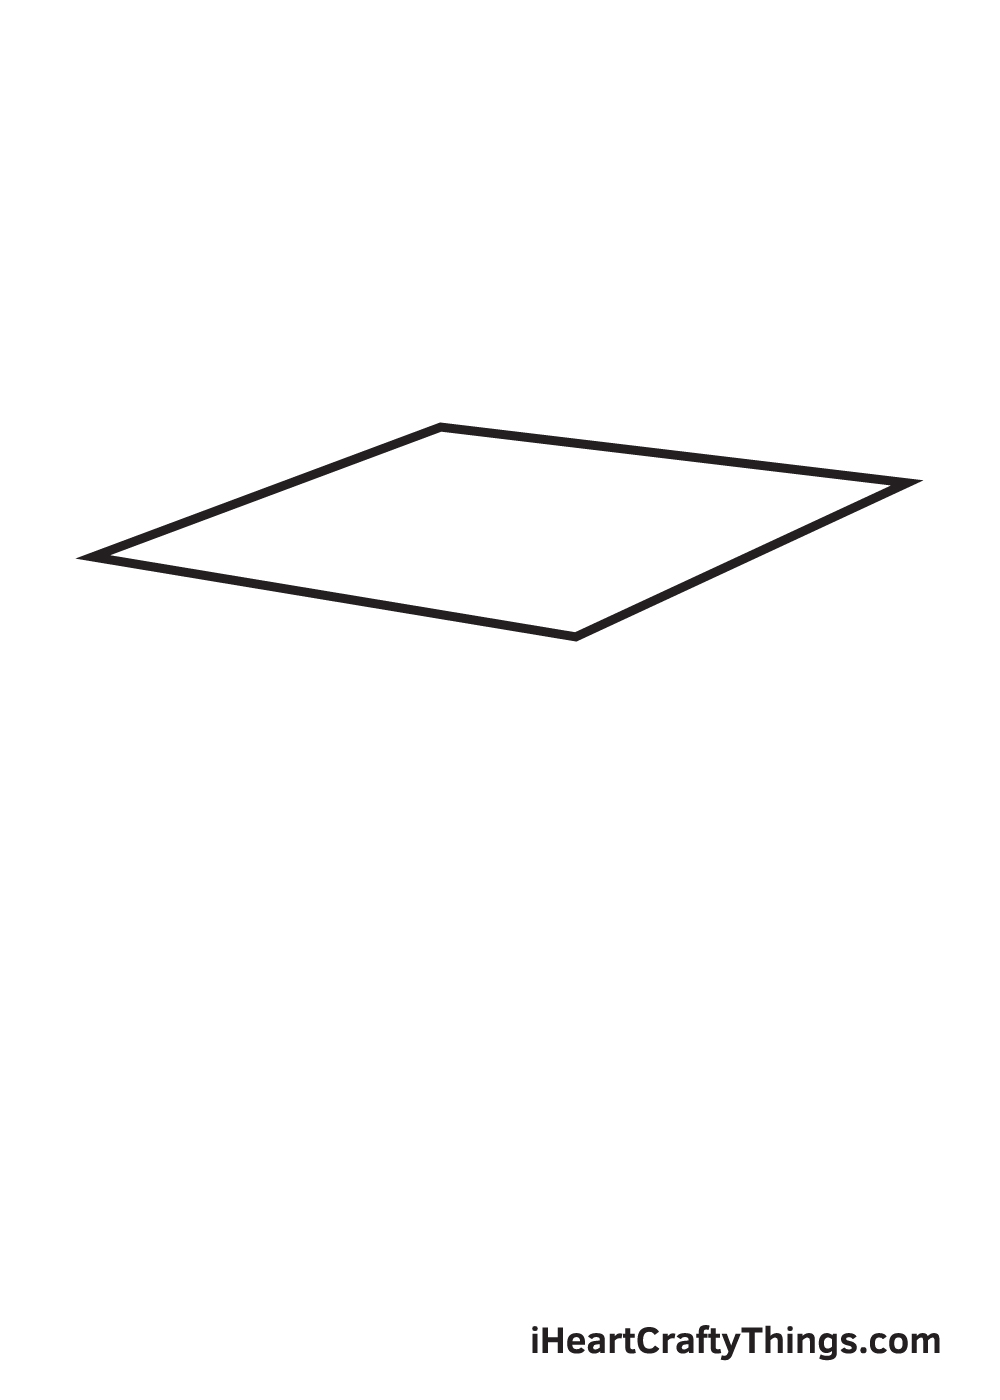 table drawing step 1